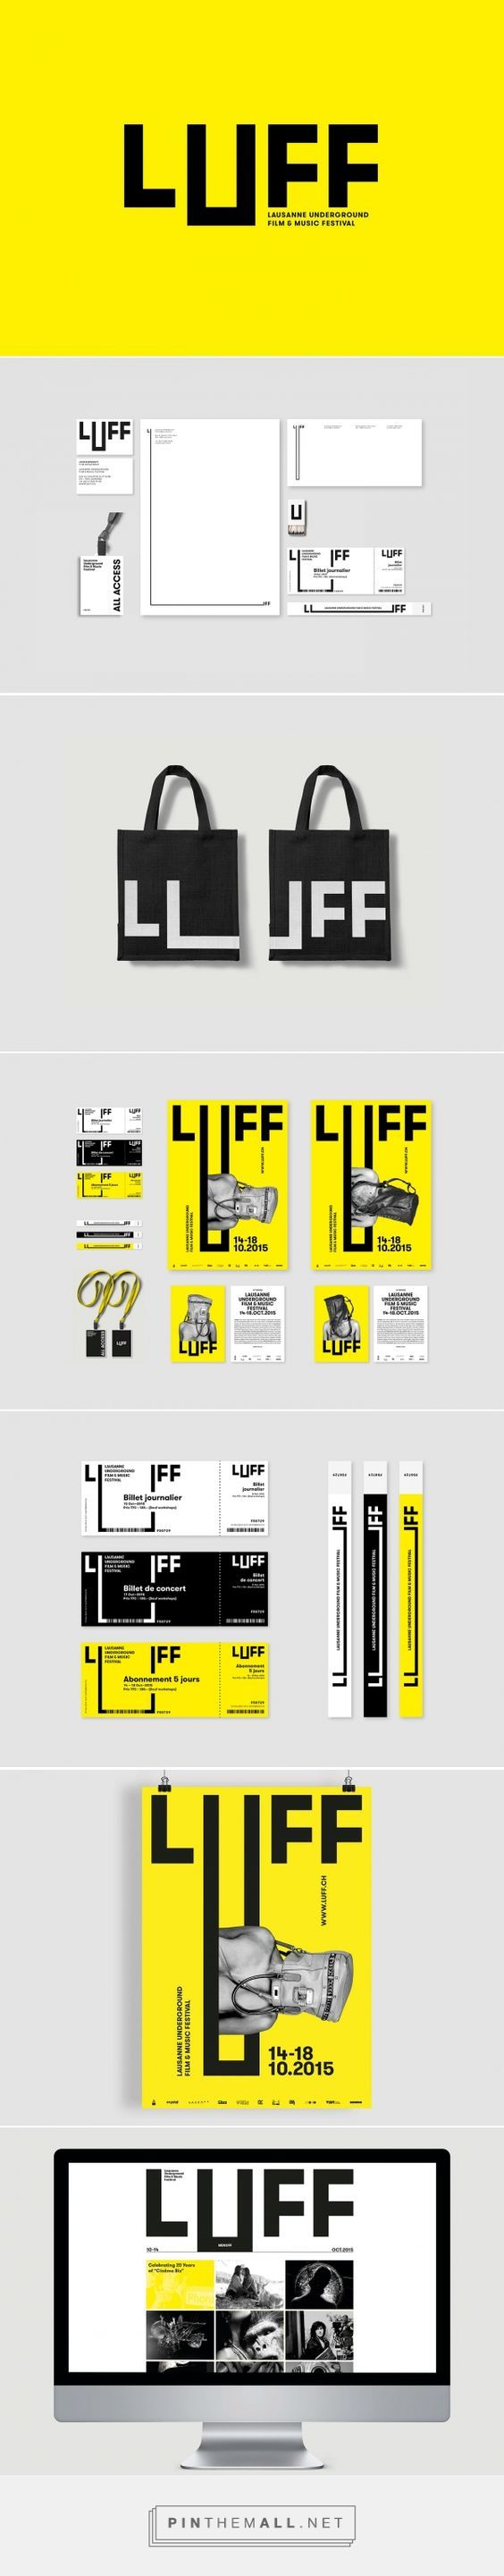 Lausanne Underground Film & Music Festival Branding by Lionel Melchiorre | Fivestar Branding Agency – Design and Branding Agency & Curated Inspiration Gallery